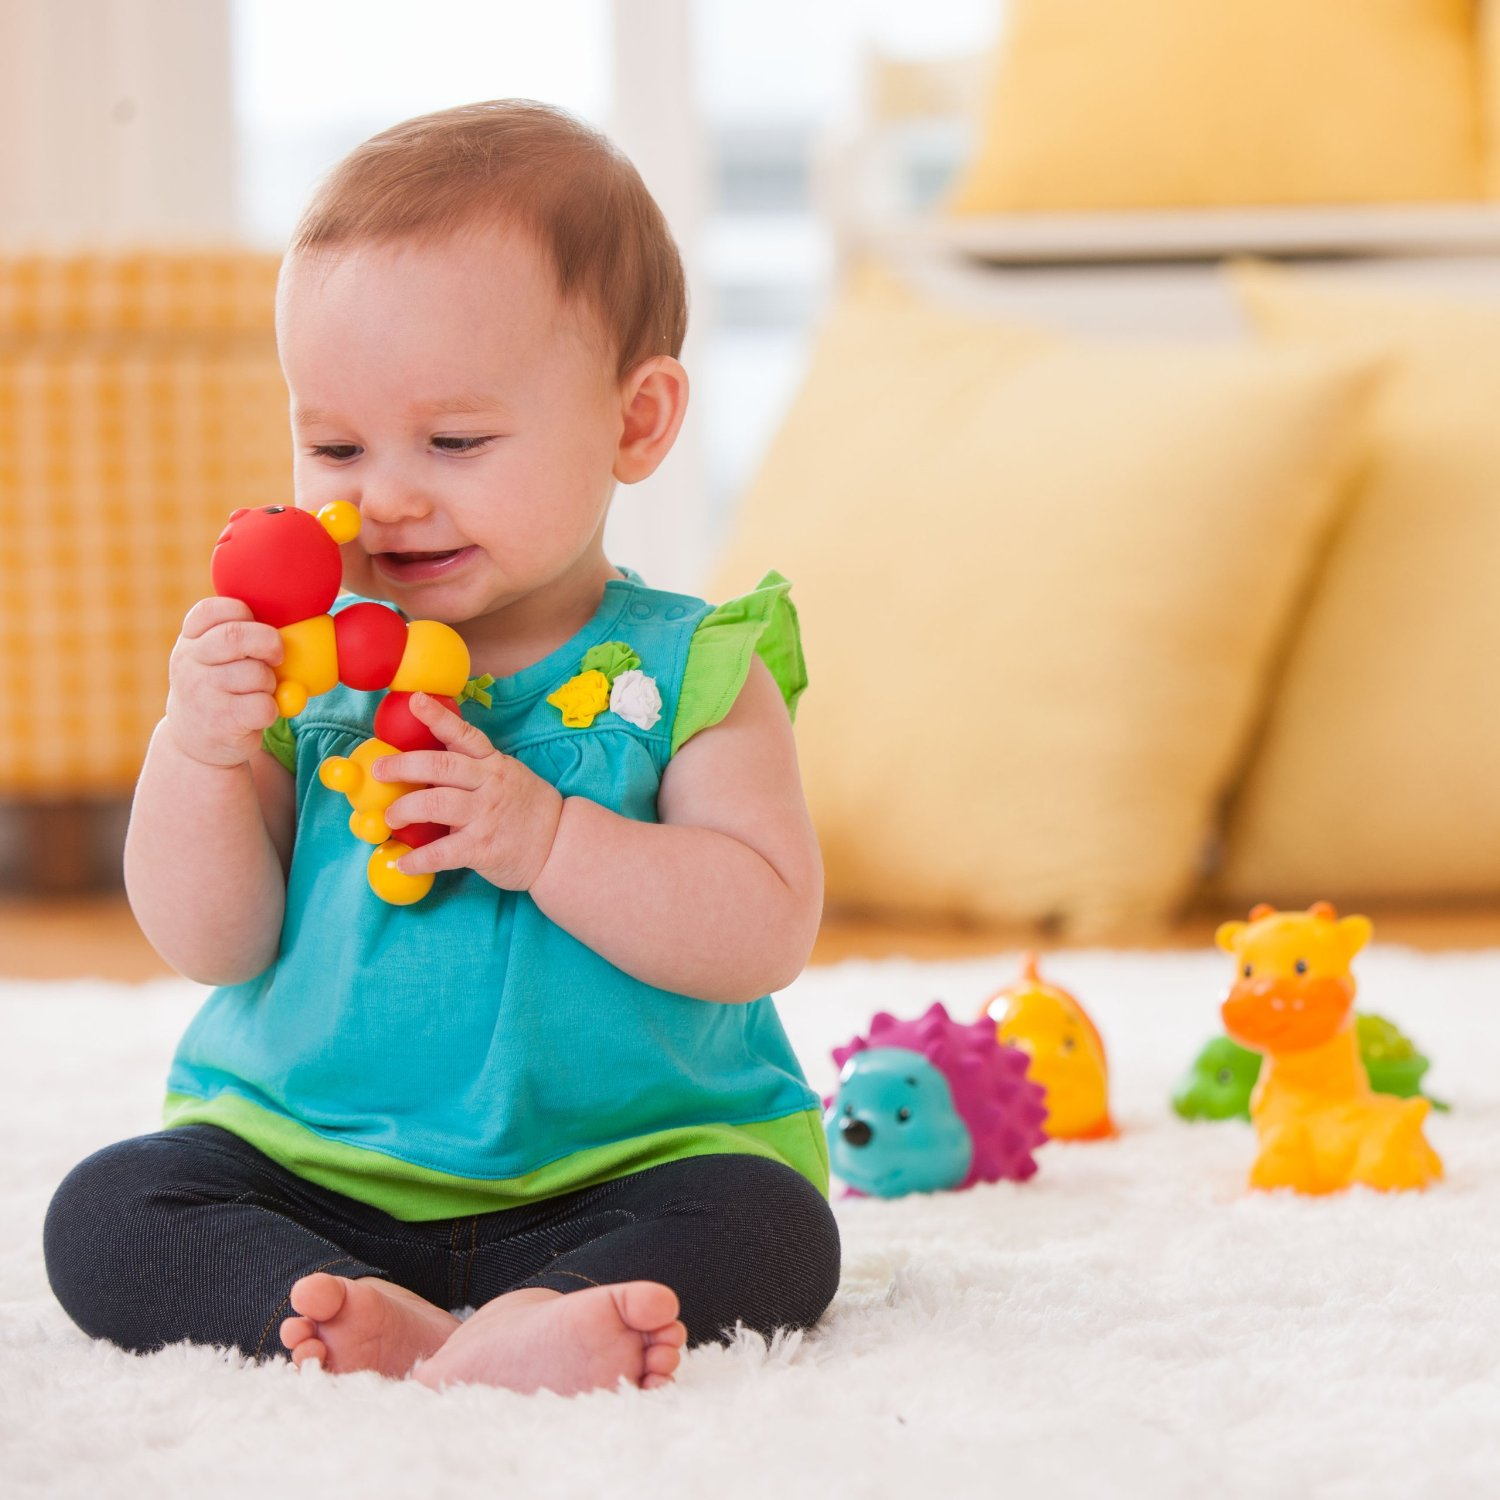 Best Baby Toys 2013 : Best baby toys accessories for months from a mom of